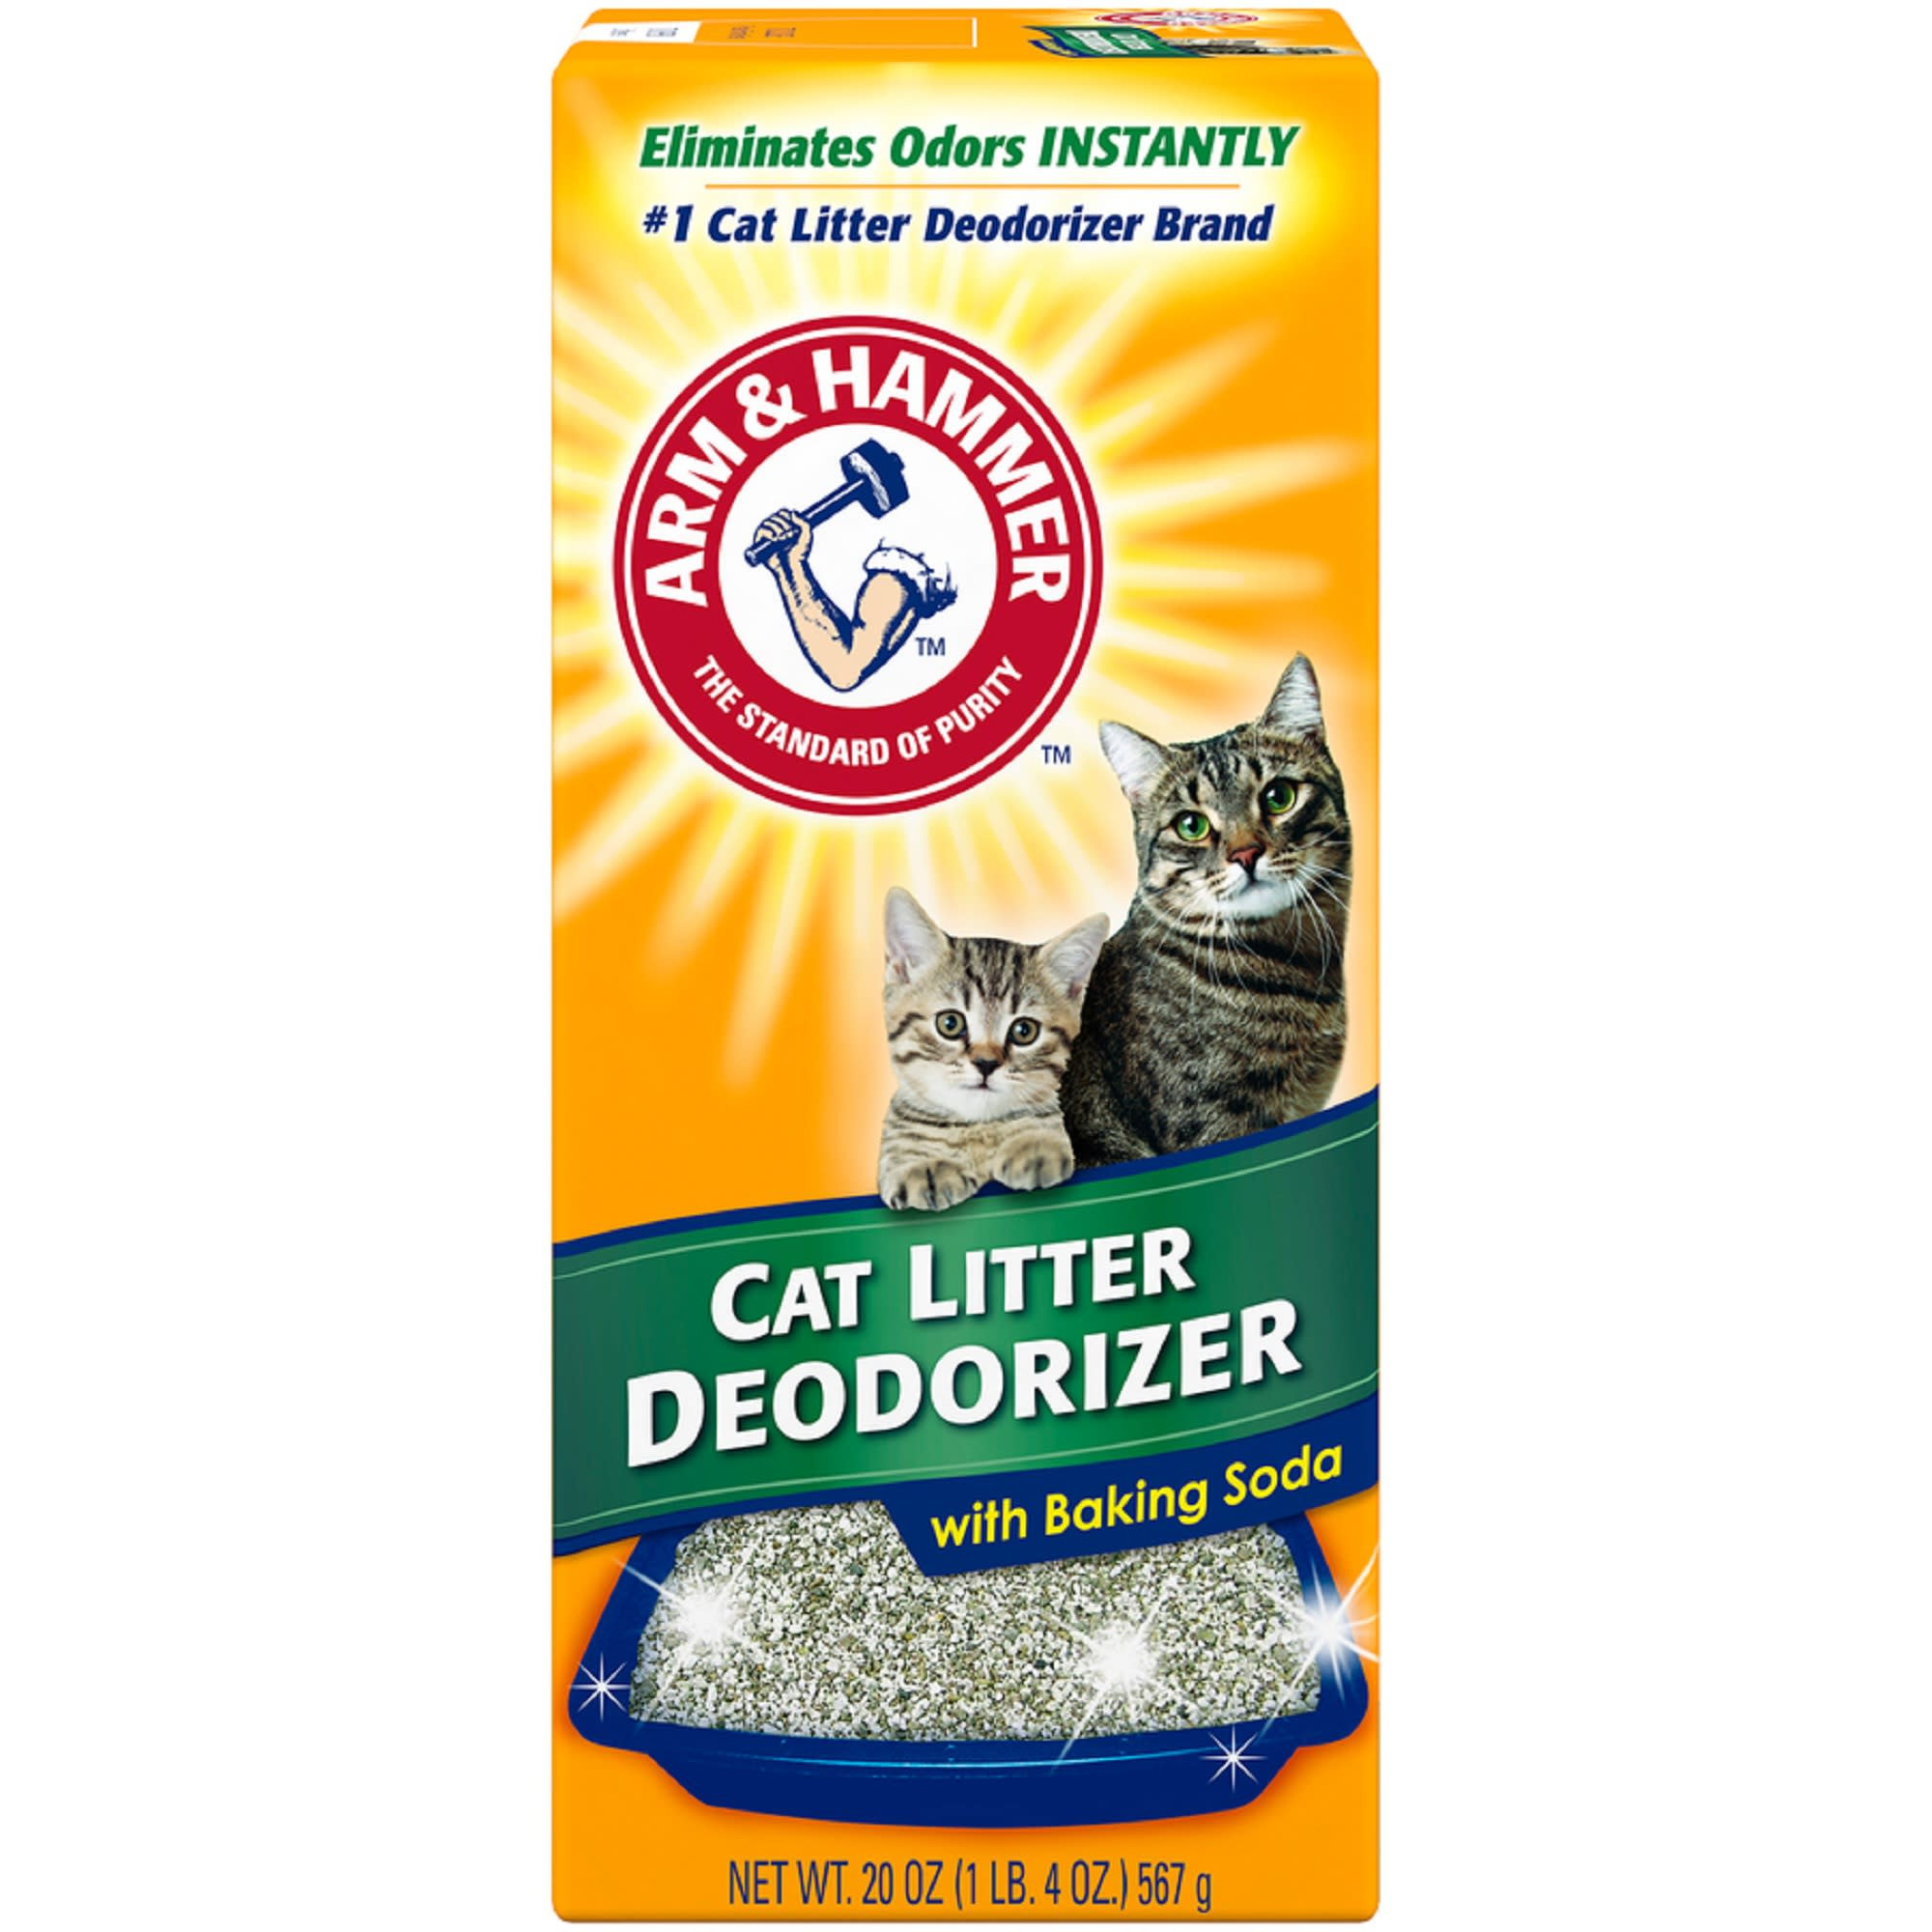 Cat Excrement Deodorizer